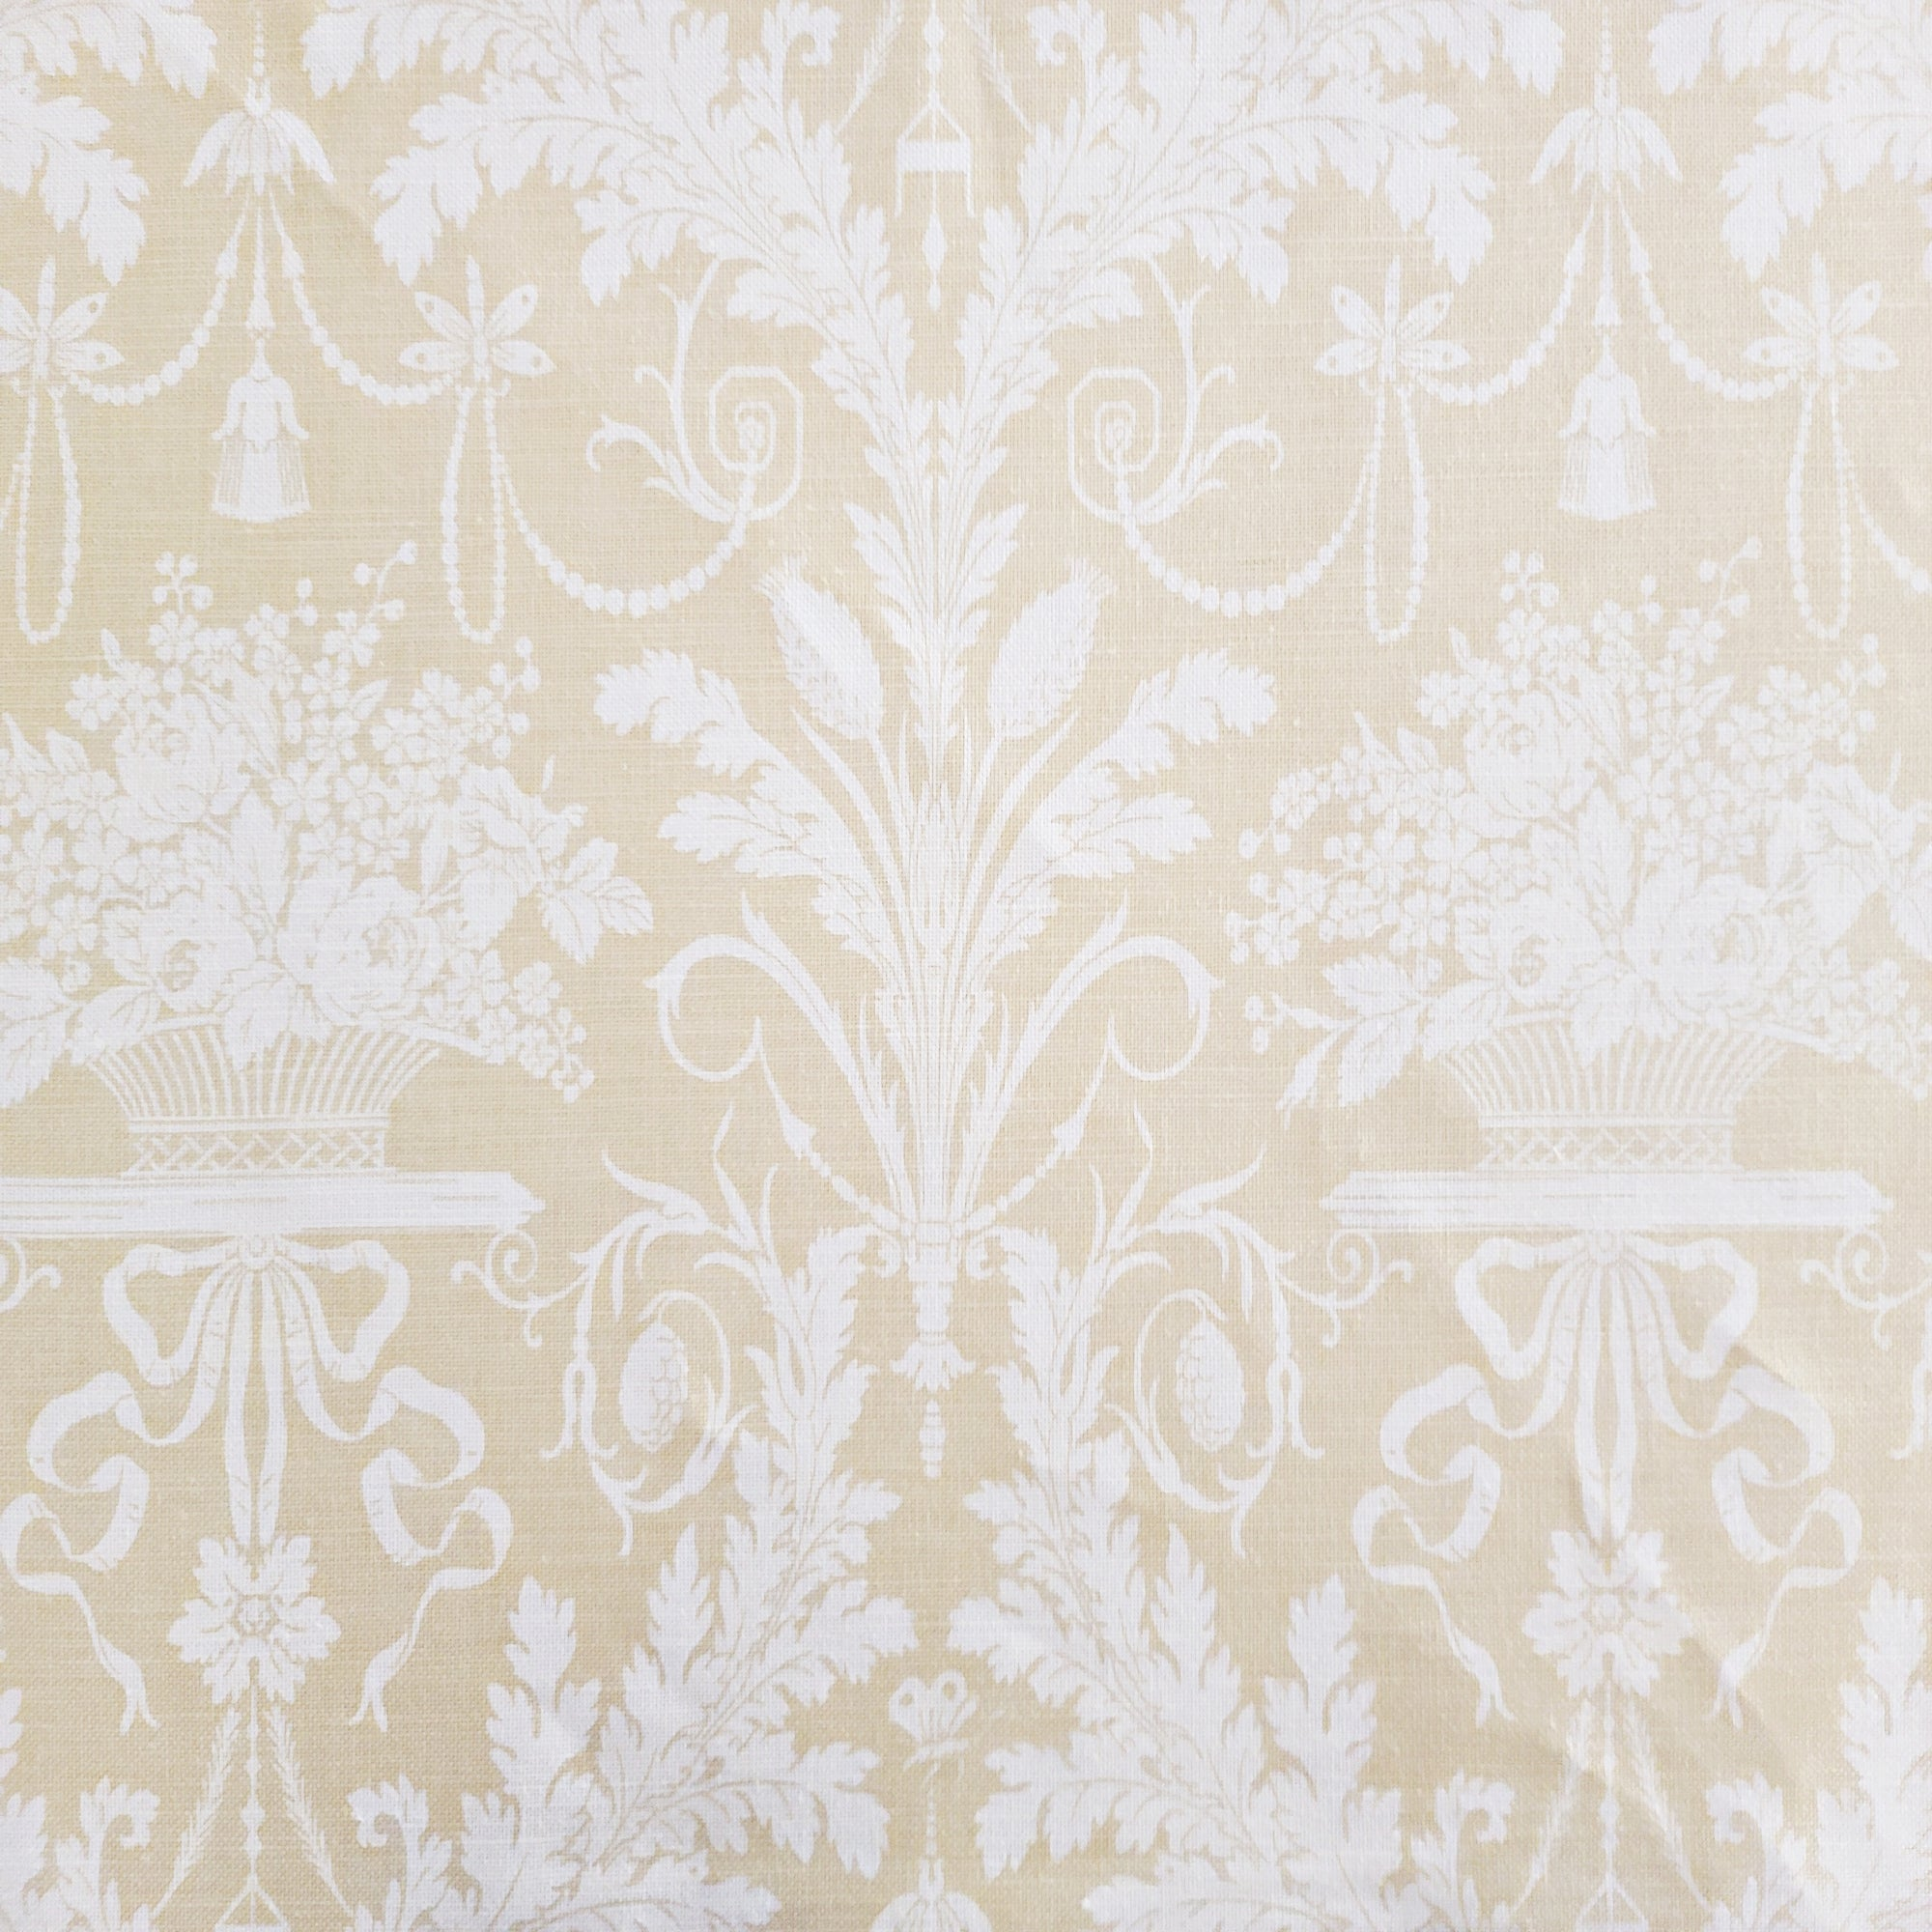 Schumacher Clairemont Damask in Yellow and Off White Designer Fabric